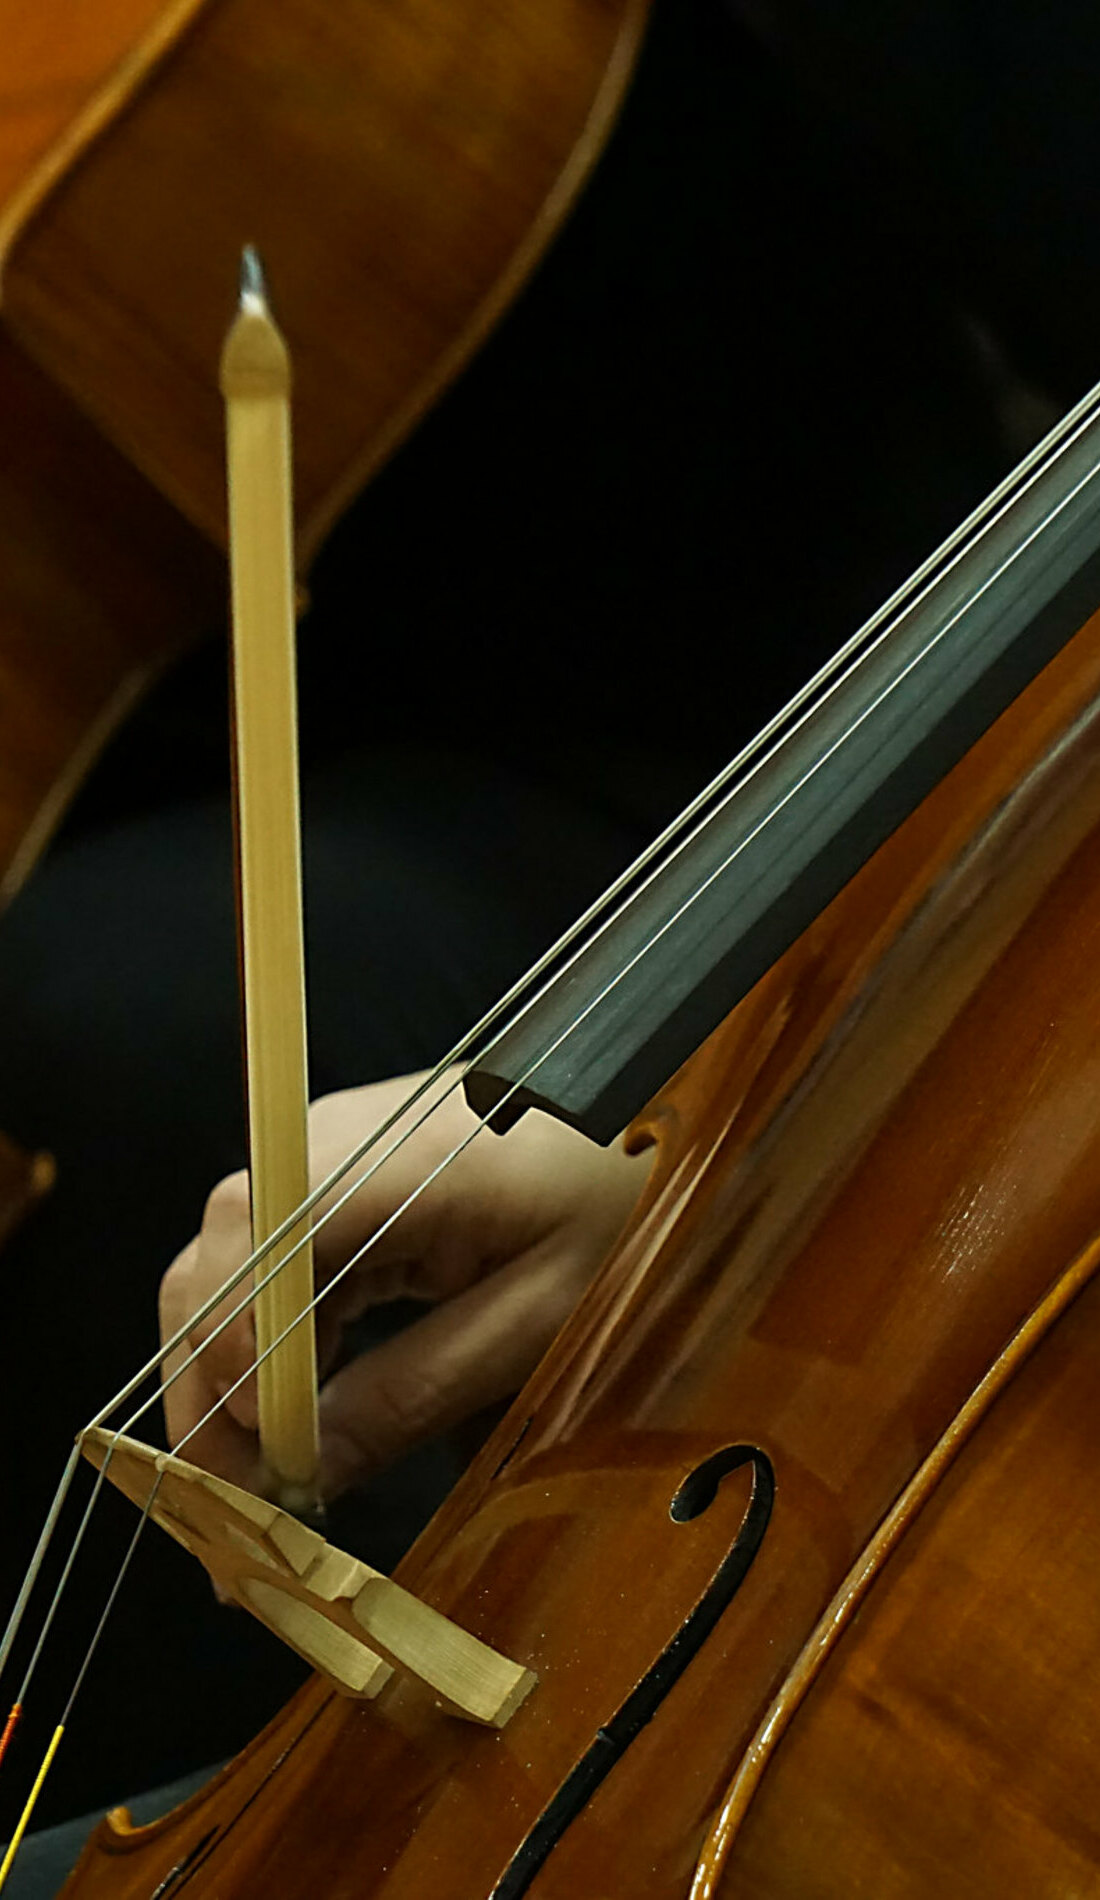 A Hudson Valley Philharmonic live event